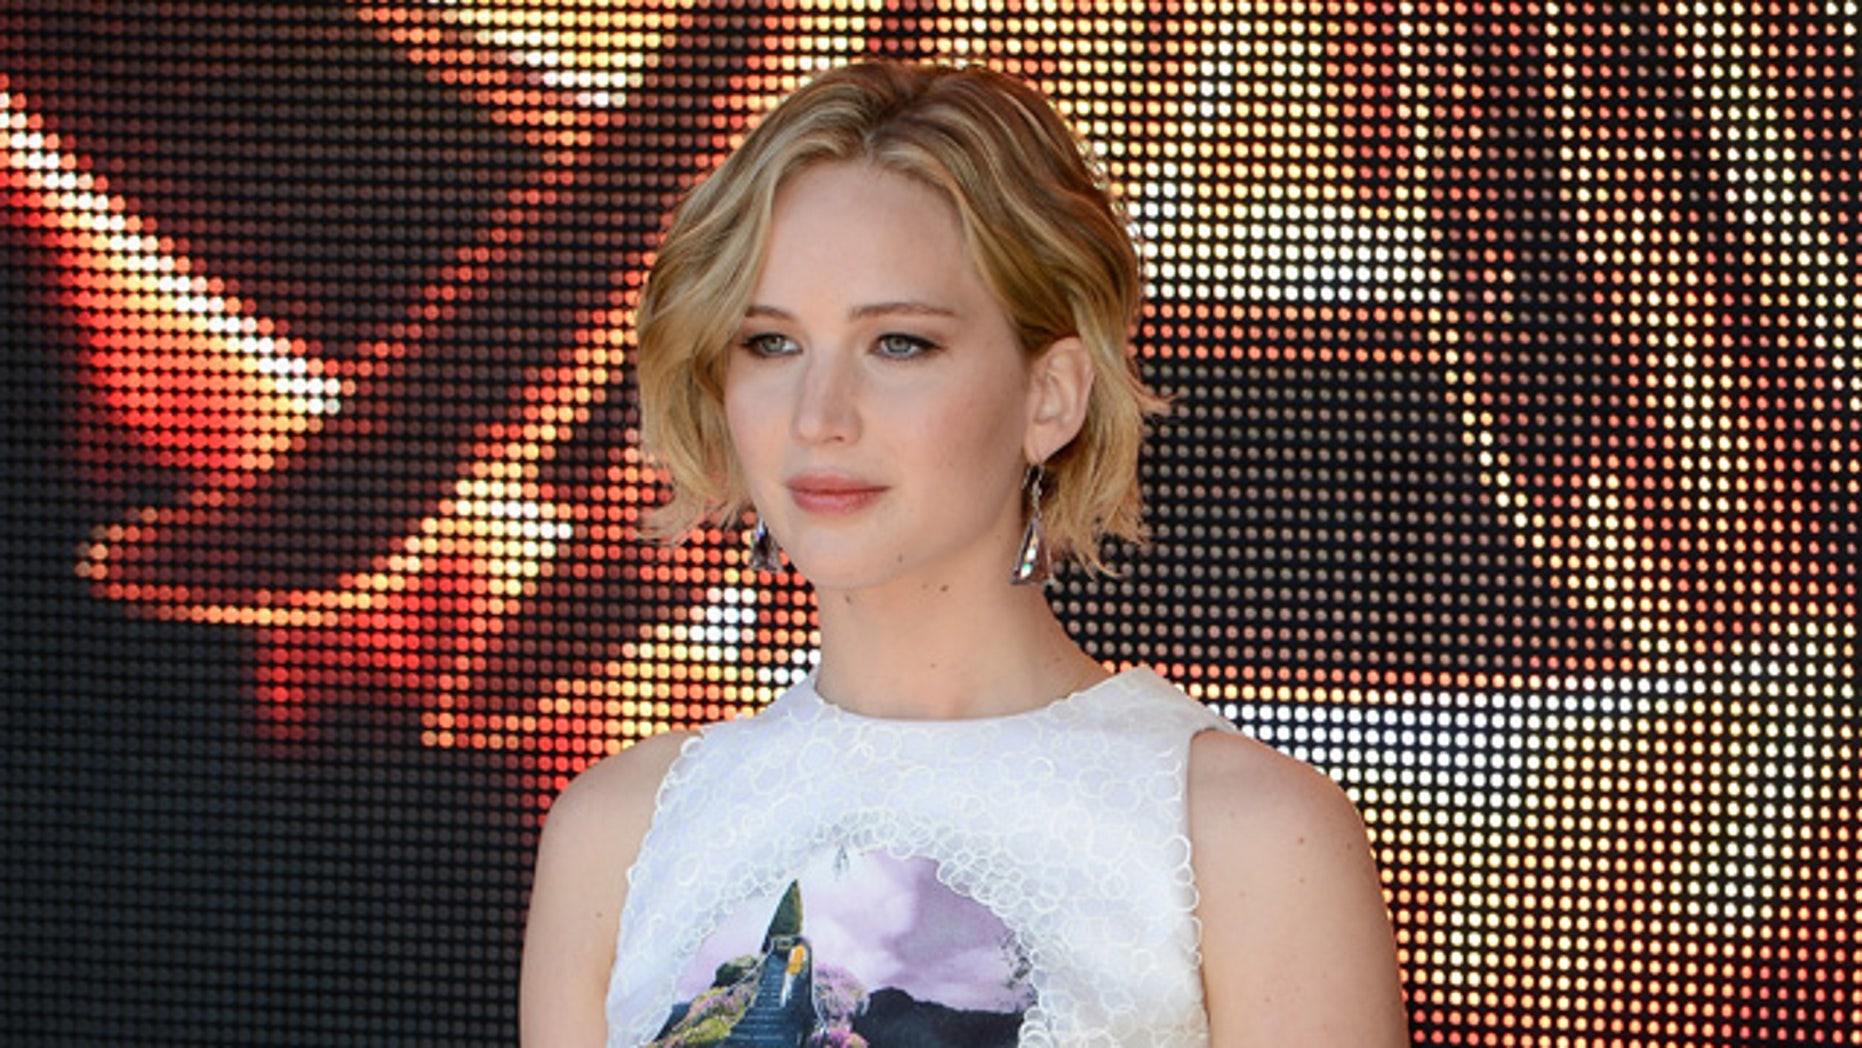 """CANNES, FRANCE - MAY 17:  Actress Jennifer Lawrence attends """"The Hunger Games: Mockingjay Part 1"""" photocall at the 67th Annual Cannes Film Festival on May 17, 2014 in Cannes, France.  (Photo by Ian Gavan/Getty Images)"""